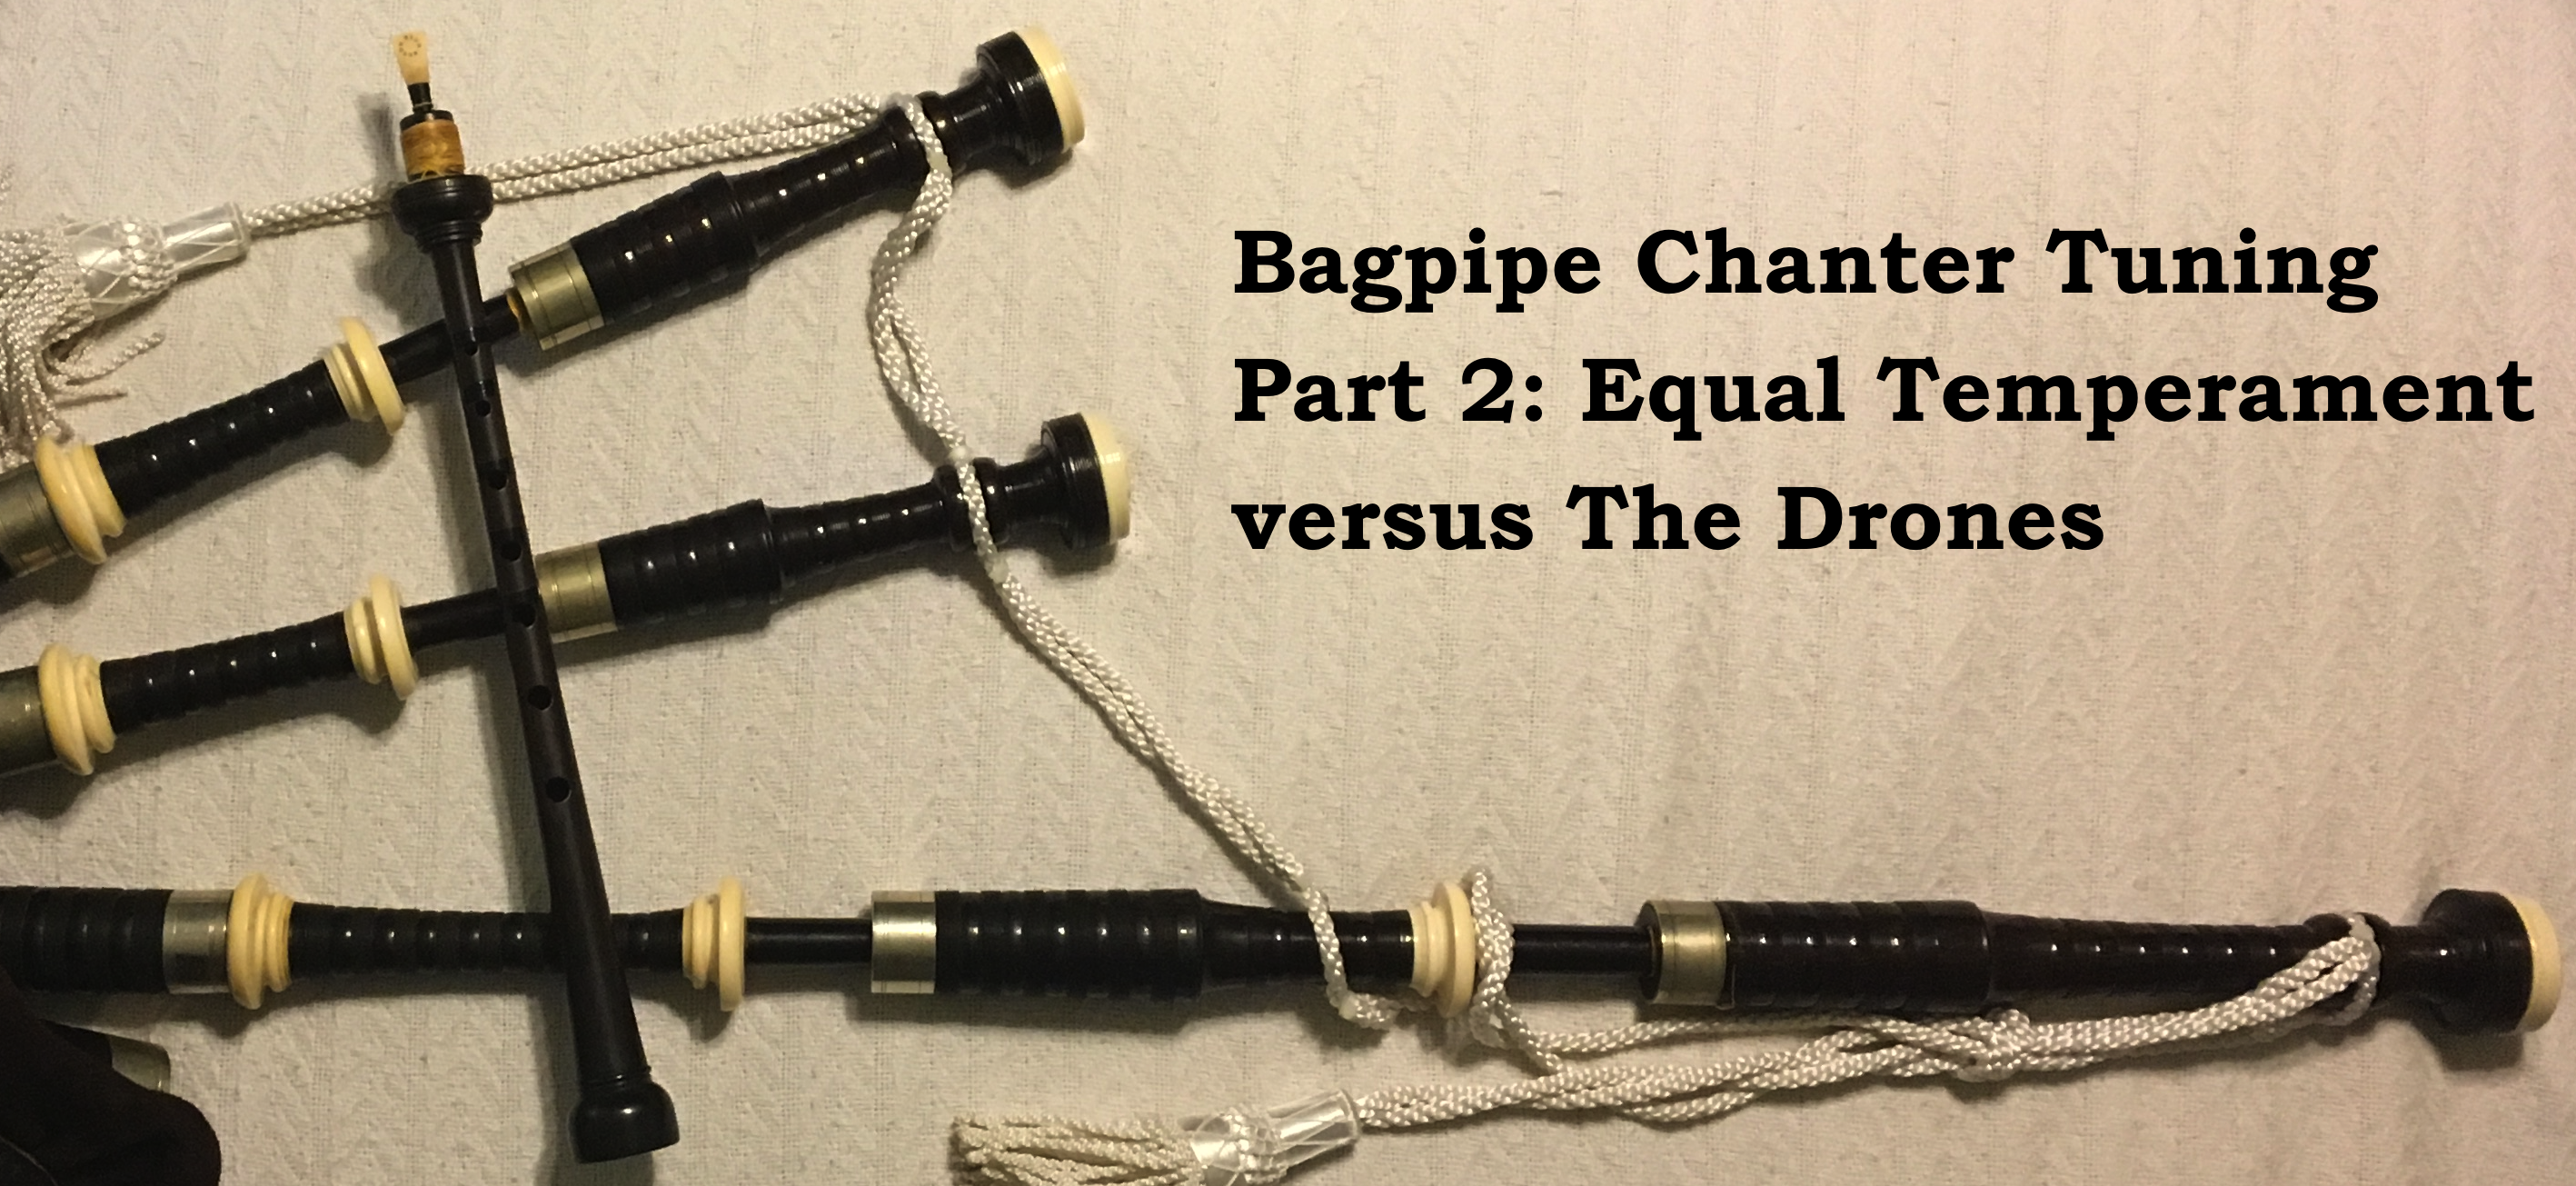 Bagpipe Chanter Tuning—Part 2: Equal Temperament vs. the Drones